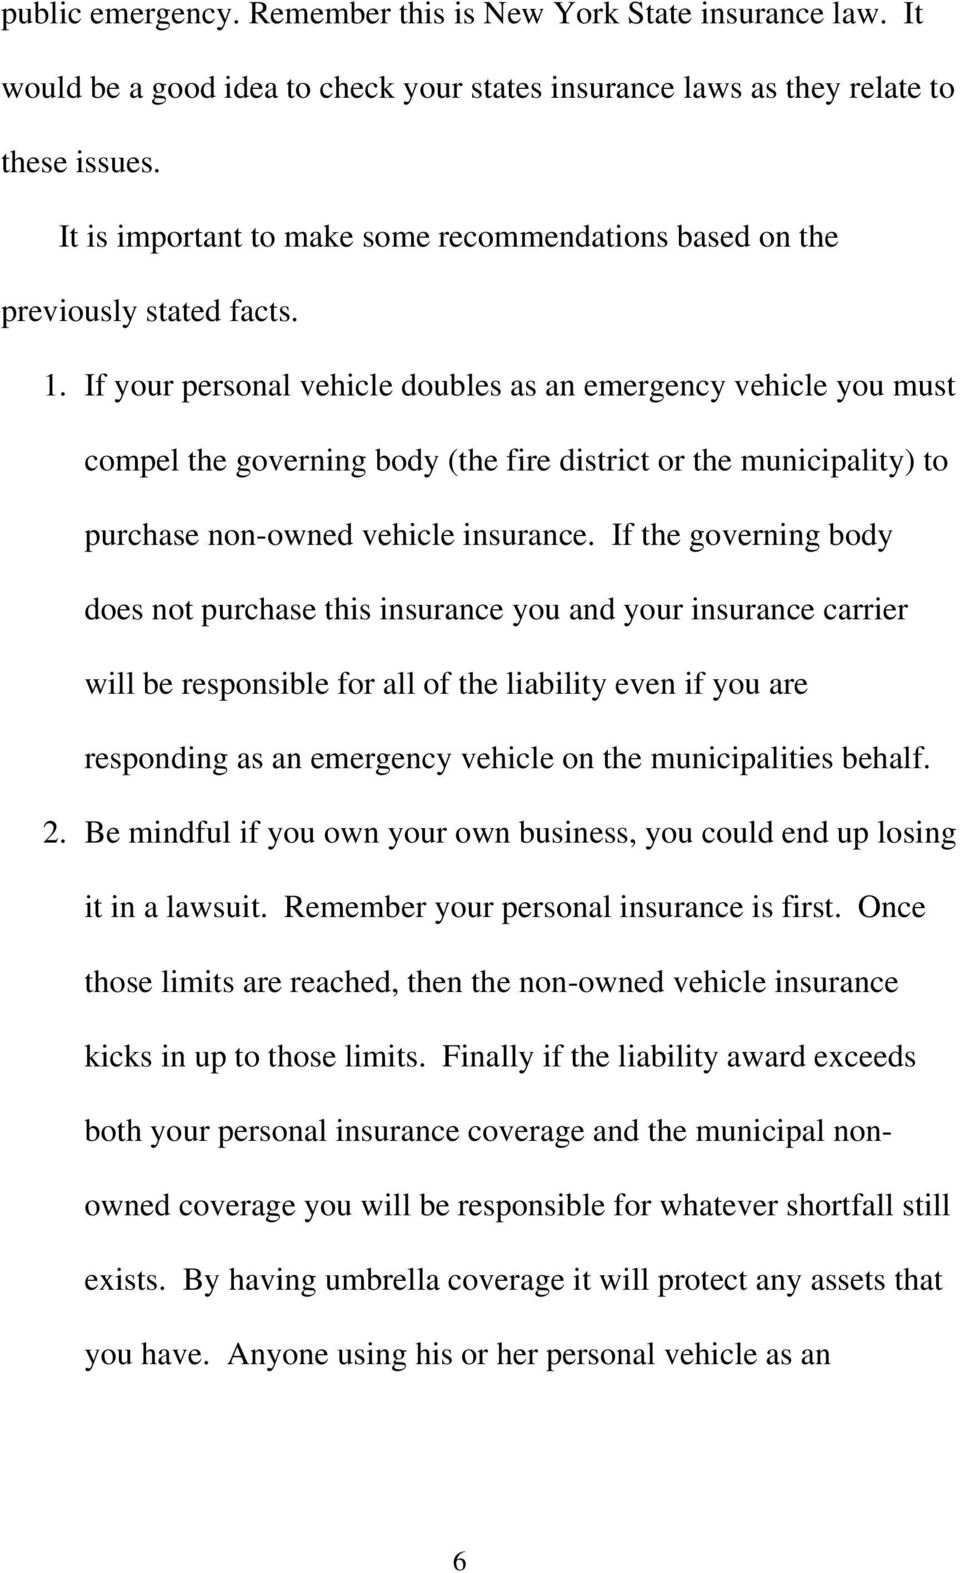 If your personal vehicle doubles as an emergency vehicle you must compel the governing body (the fire district or the municipality) to purchase non-owned vehicle insurance.